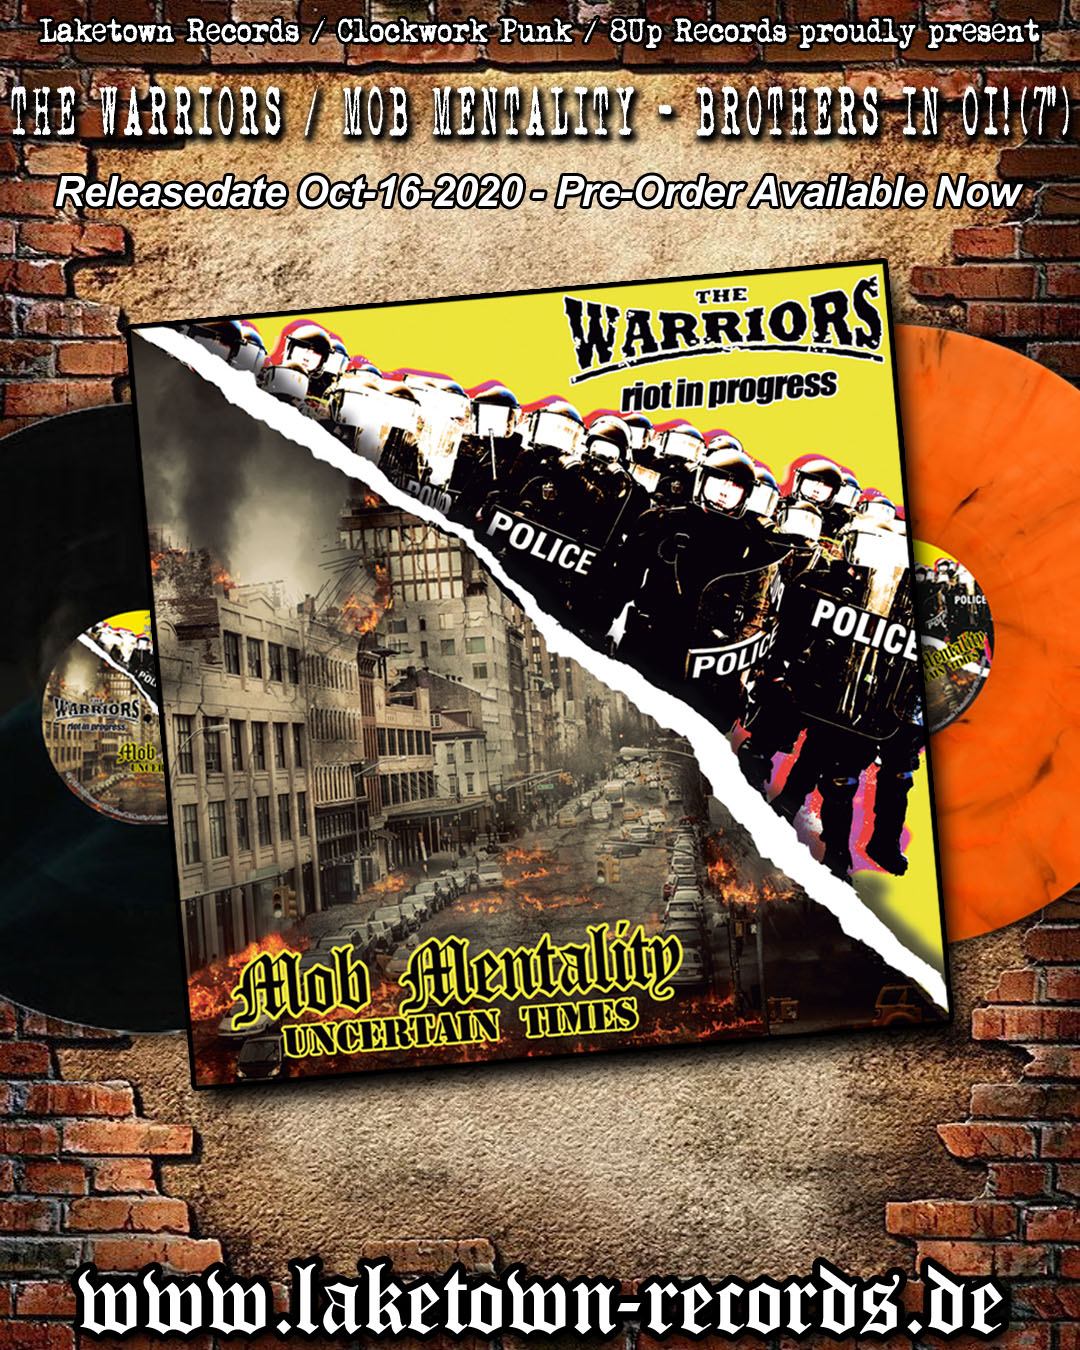 The Warriors / Mob Mentality - Brothers In Oi!